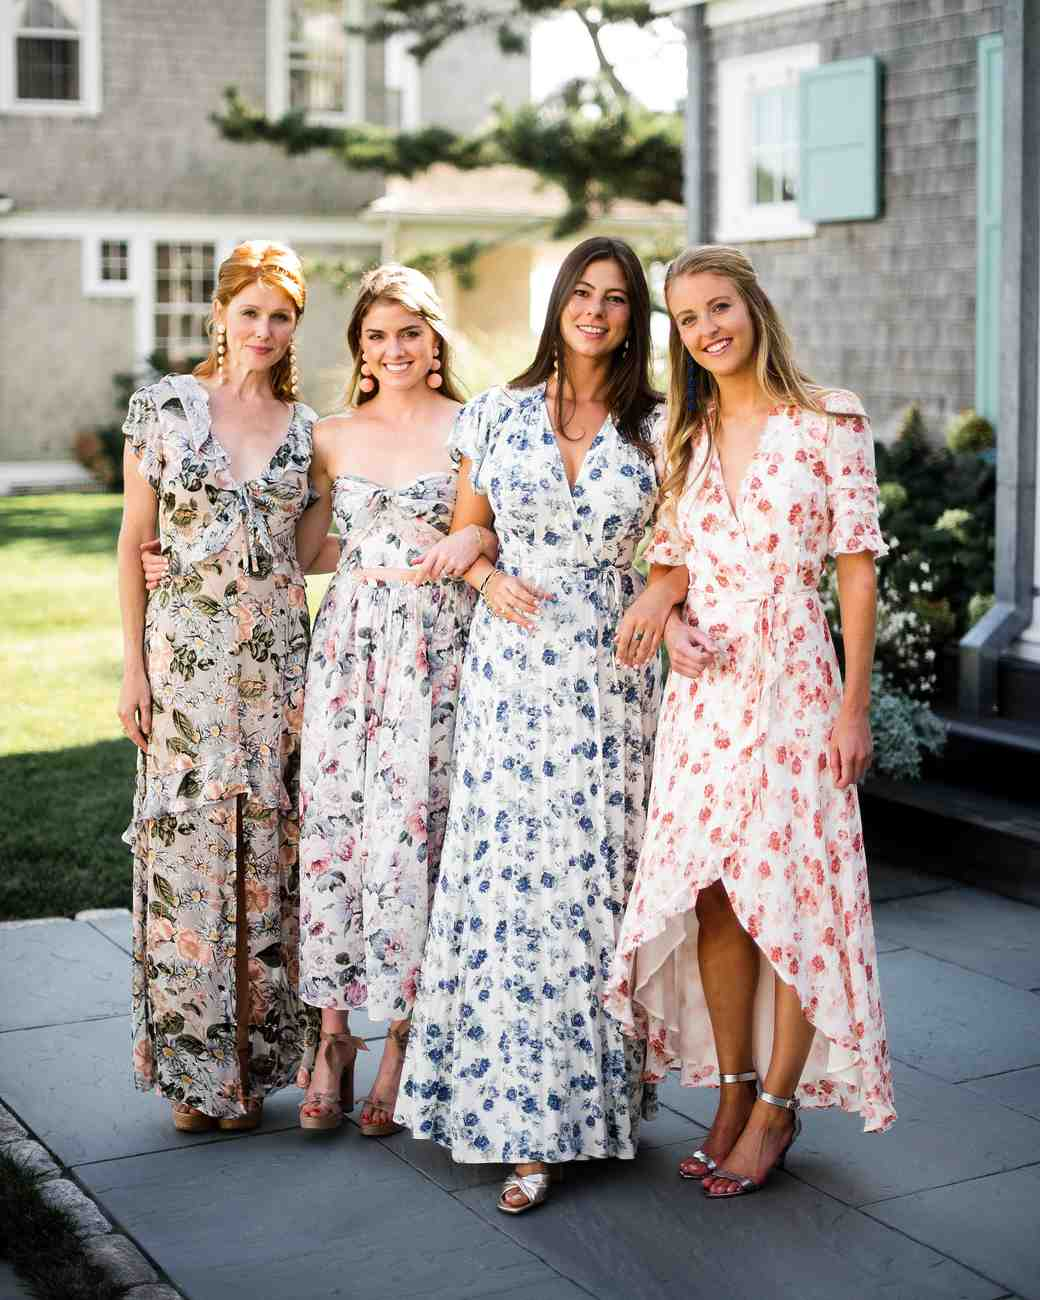 cea4a9188b57d 38 Looks That Prove Bridesmaids' Dresses Can Be Chic | Martha ...